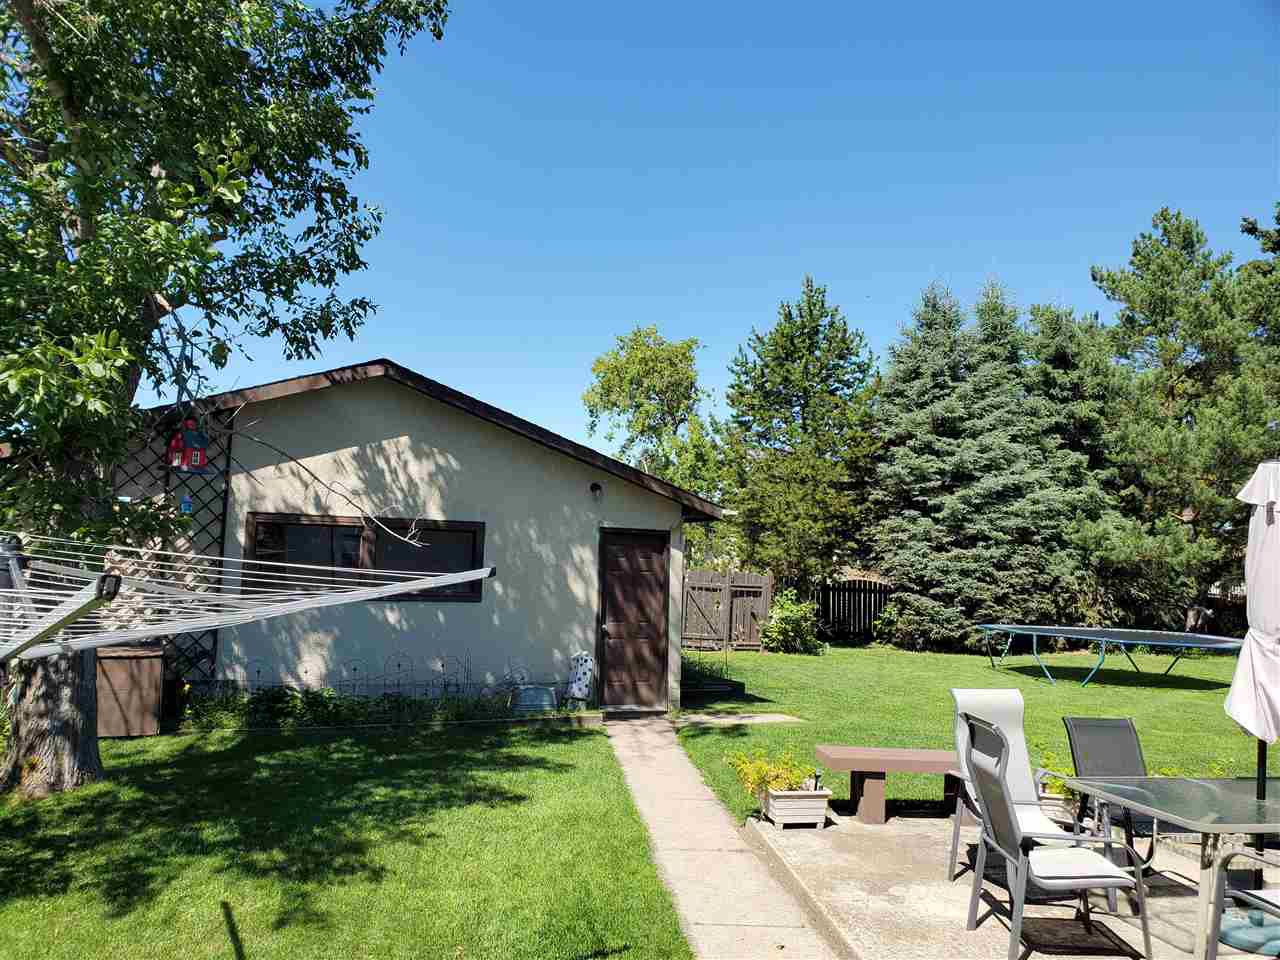 Photo 31: Photos: 125 Spruce Crescent: Wetaskiwin House for sale : MLS®# E4207728